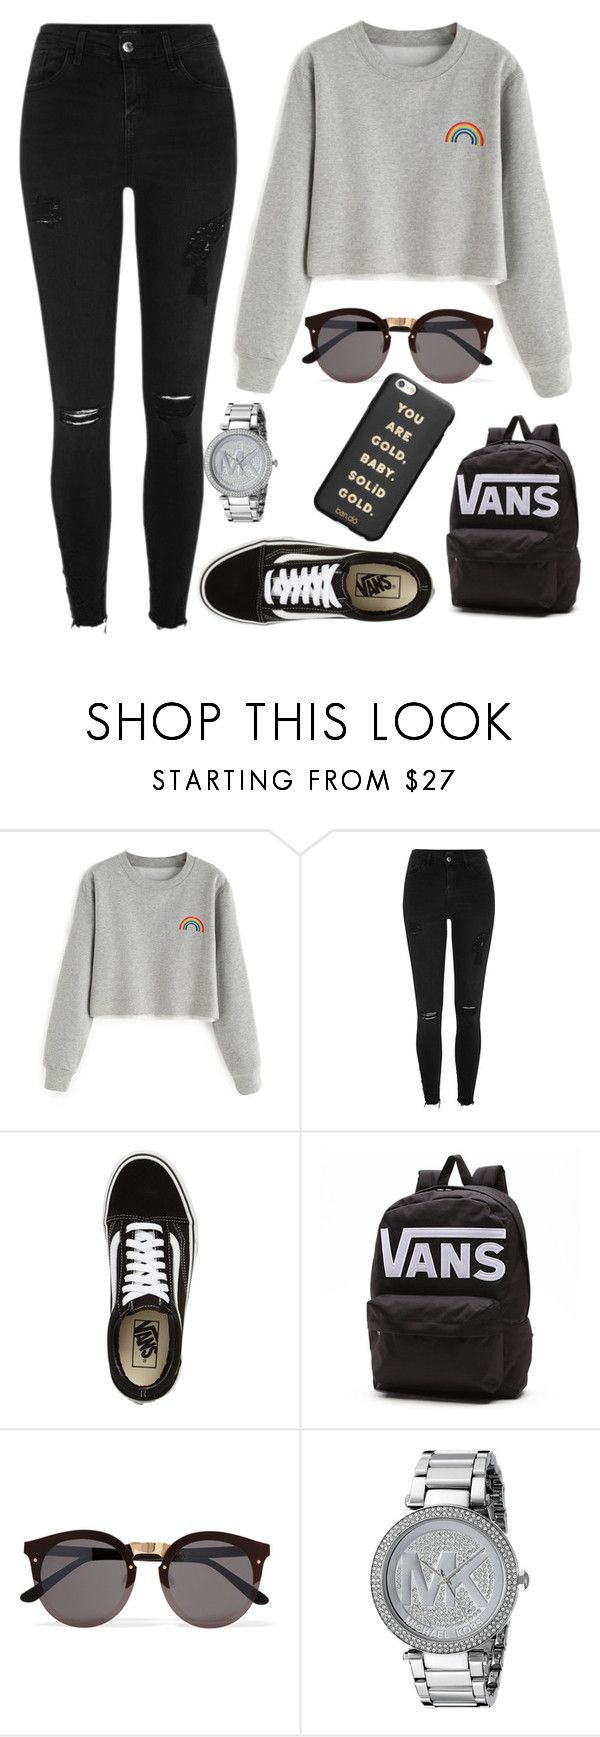 """Untitled #106"" by alexanutella on Polyvore featuring River Island, Vans, Illesteva, Michael Kors and ban.do"